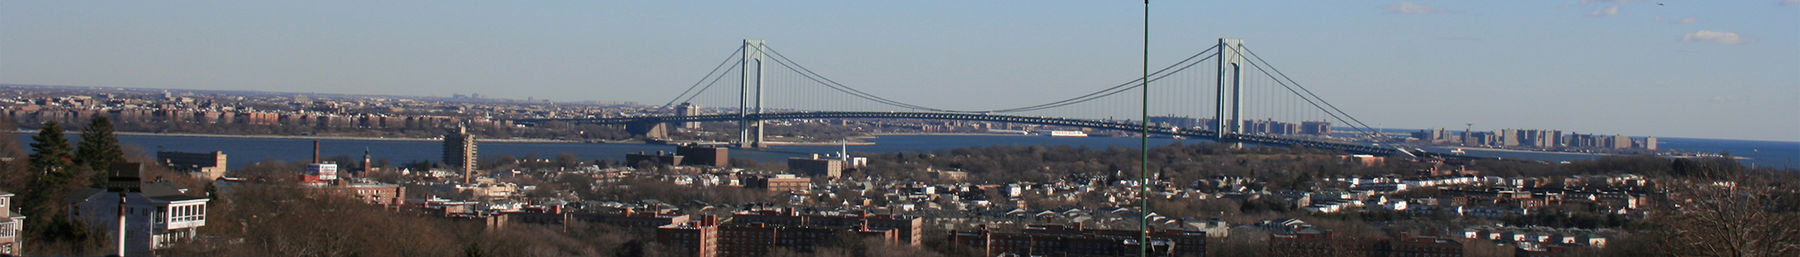 The Verrazano-Narrows Bridge as seen from Staten Island